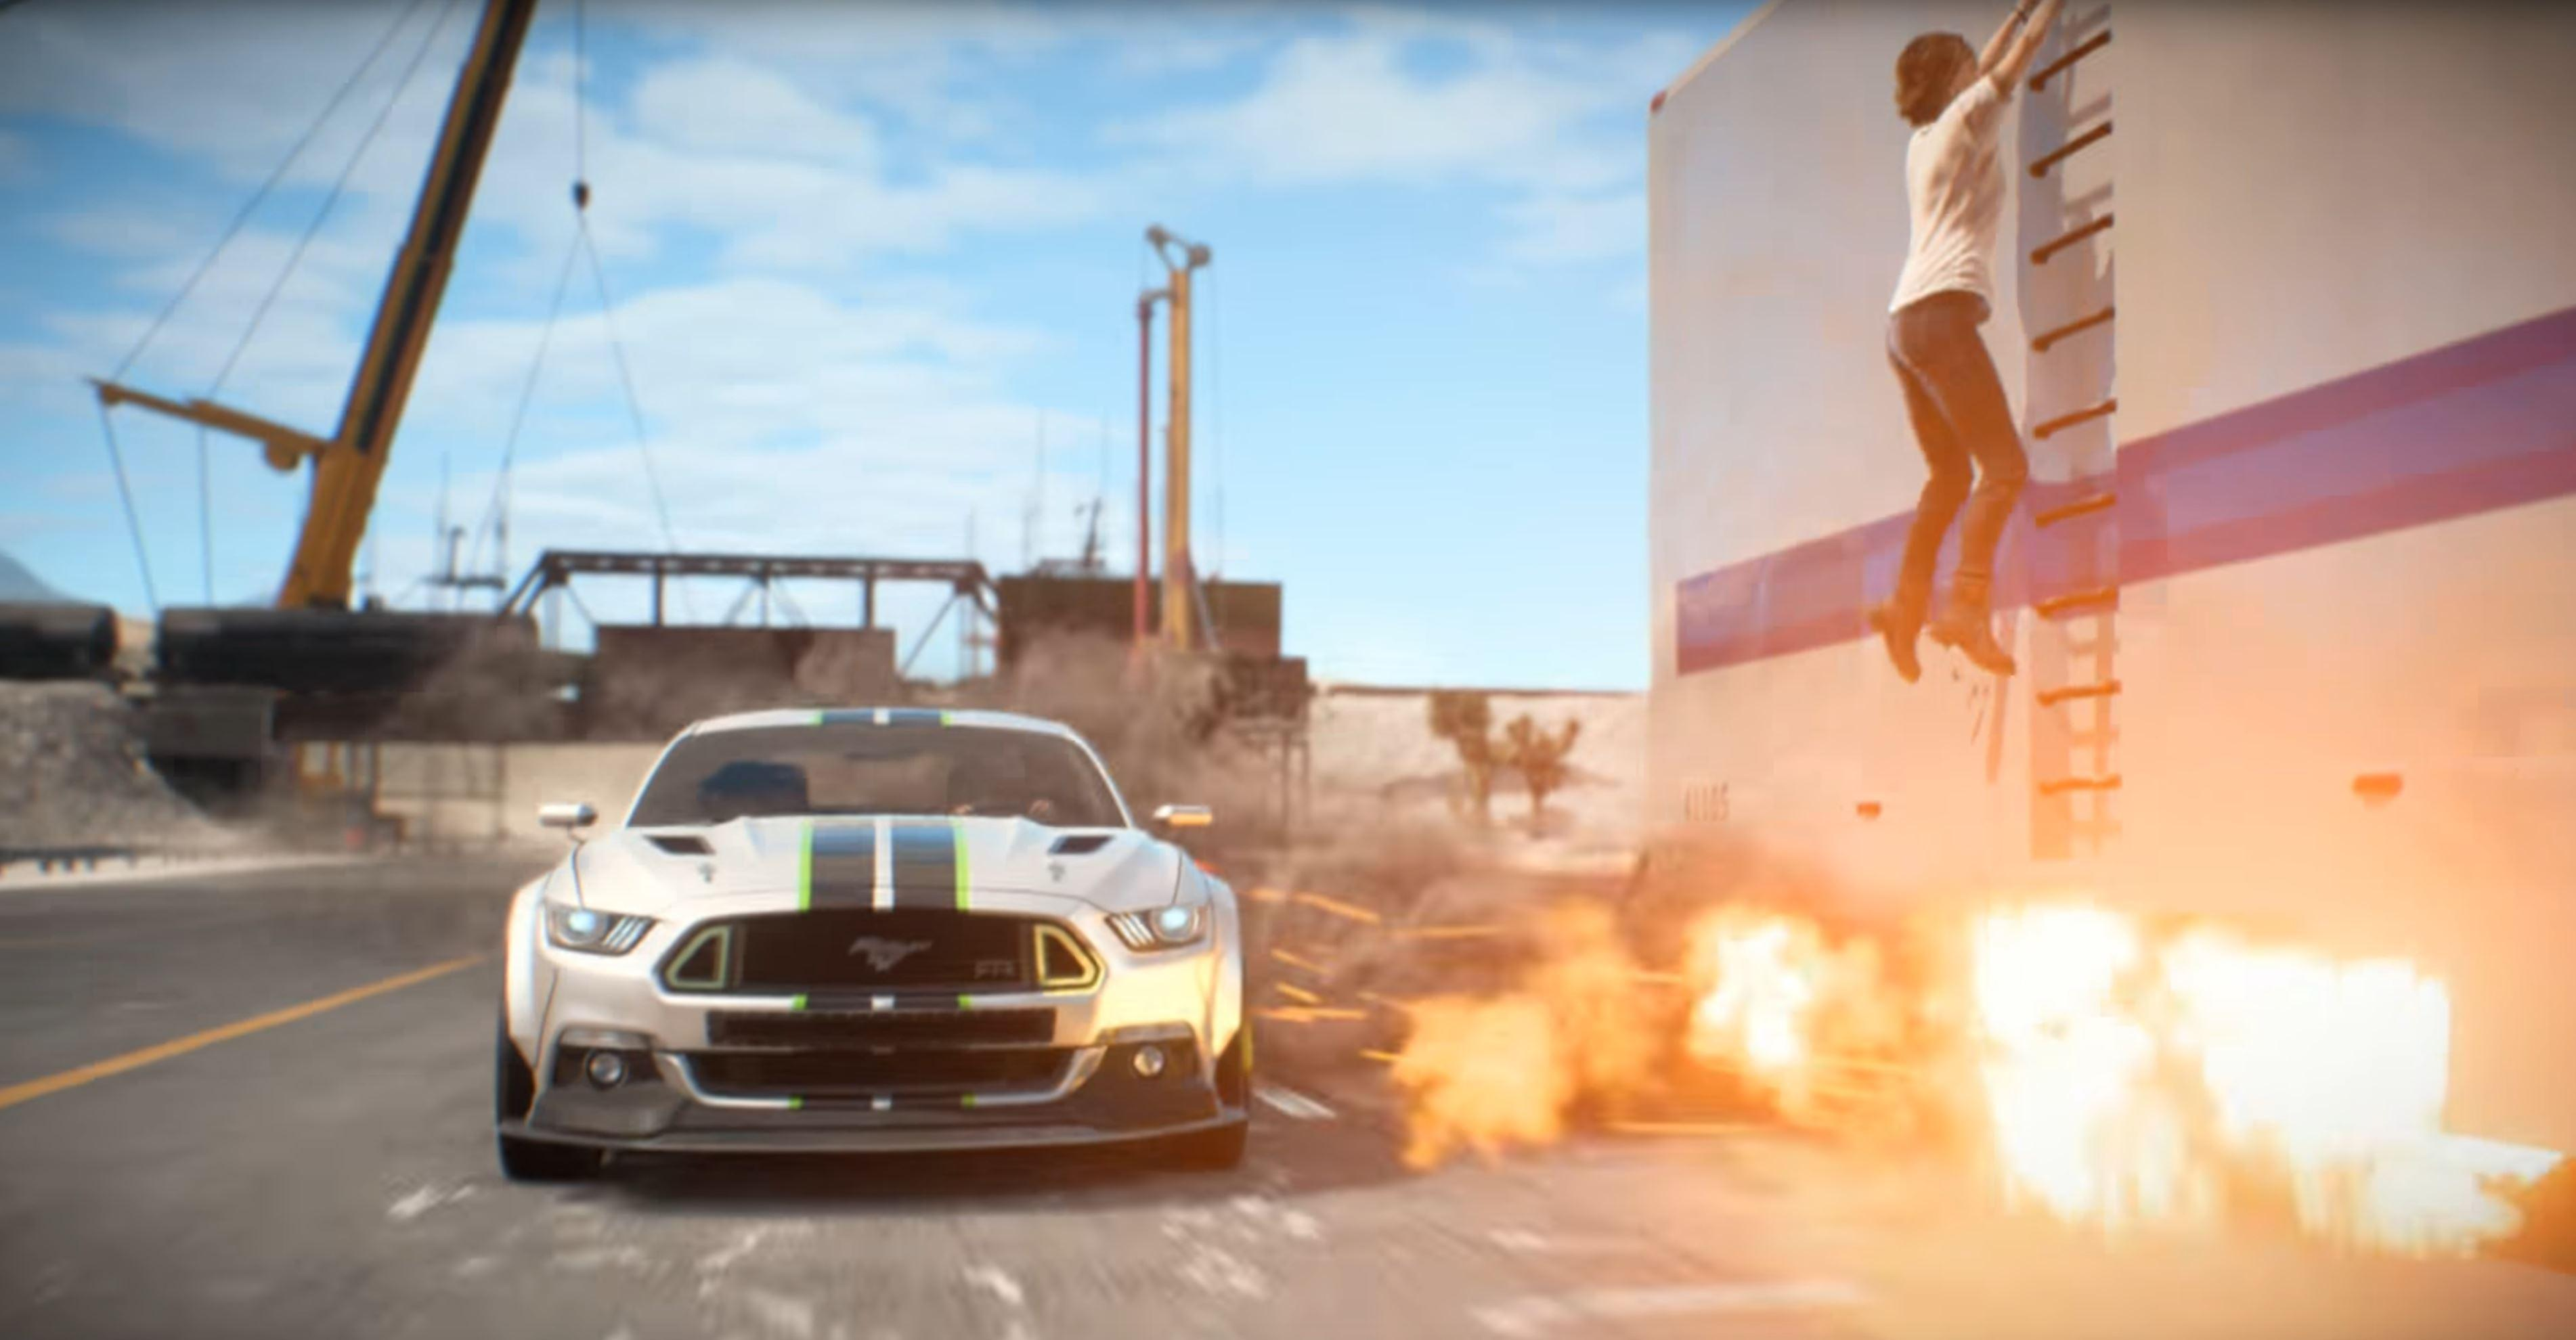 Unlike 2015's Need for Speed there will be a solo offline campaign